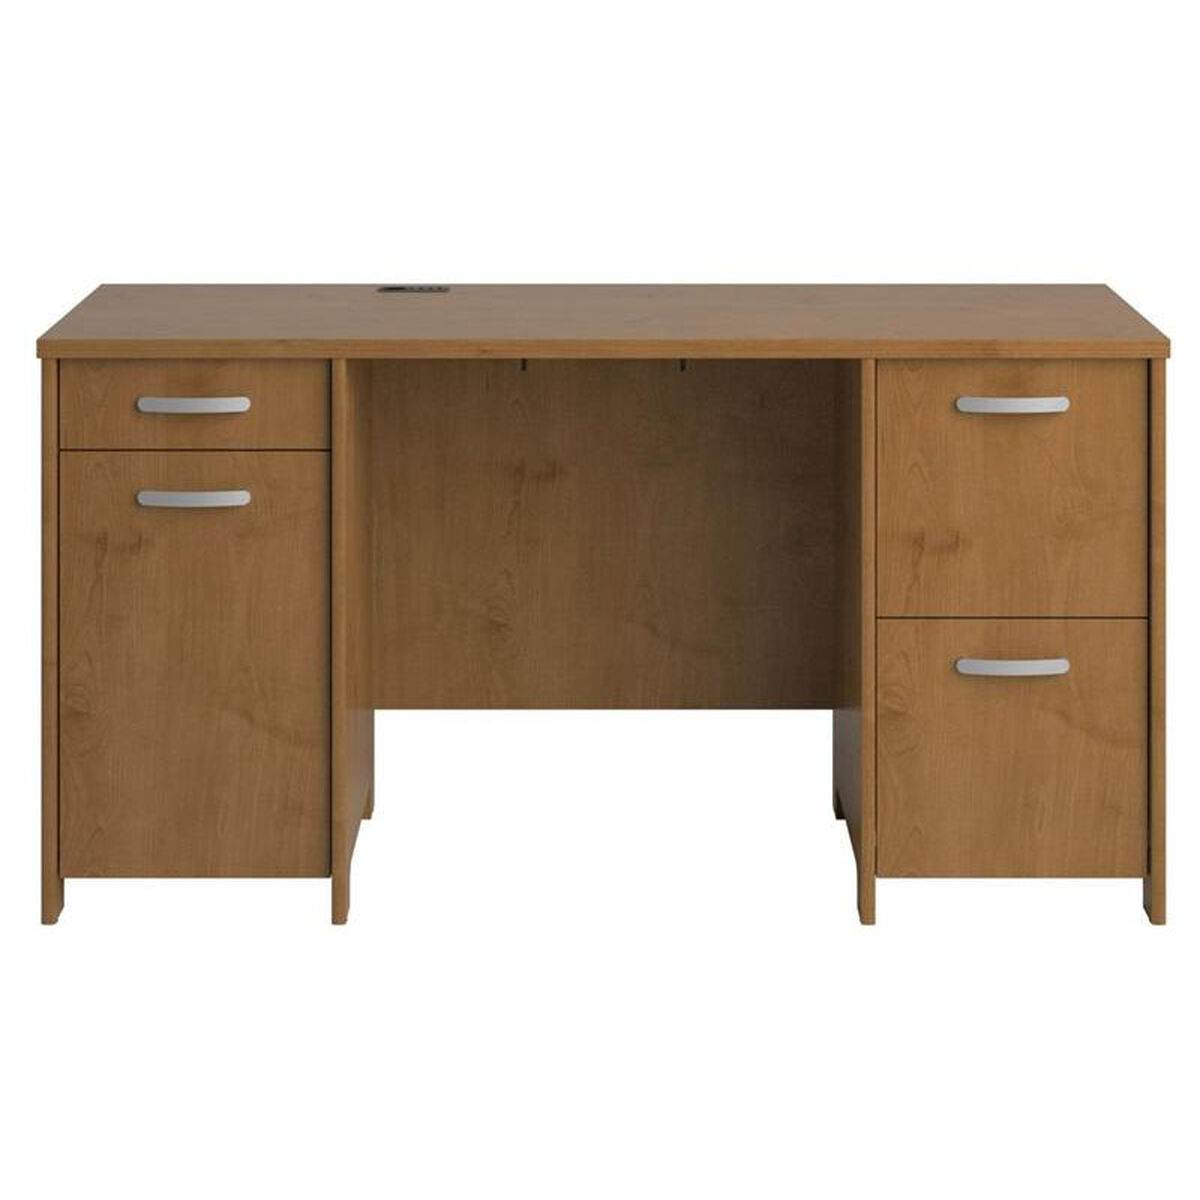 Bush home furniture envoy wooden 57 9 39 39 w x 30 2 39 39 h double for Home furnishing sites